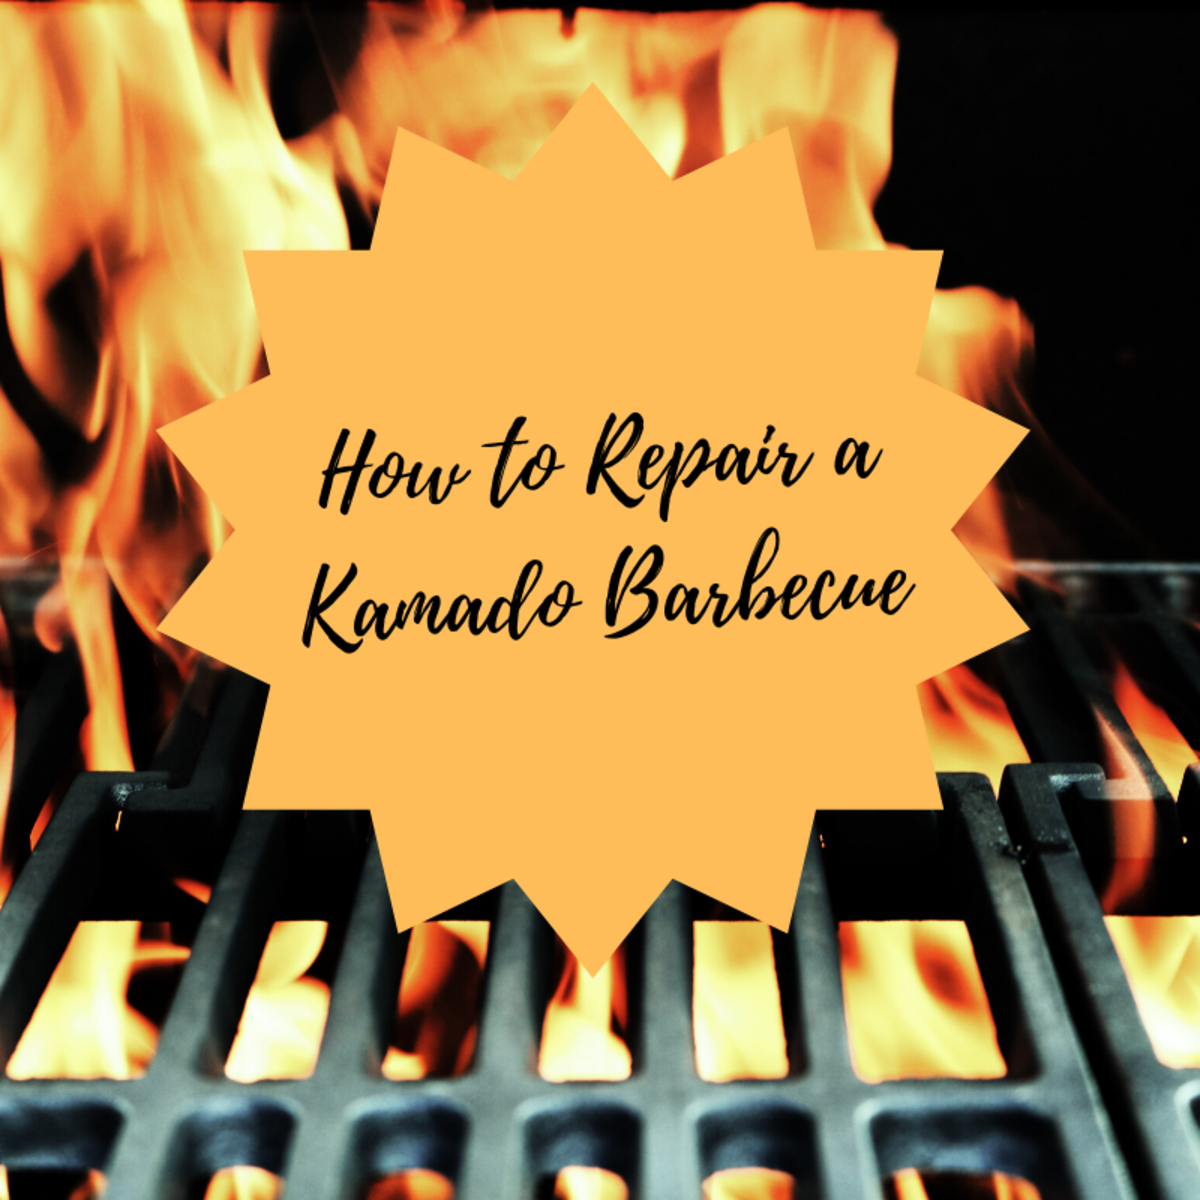 How to Repair a Kamado Barbecue When the Top Breaks